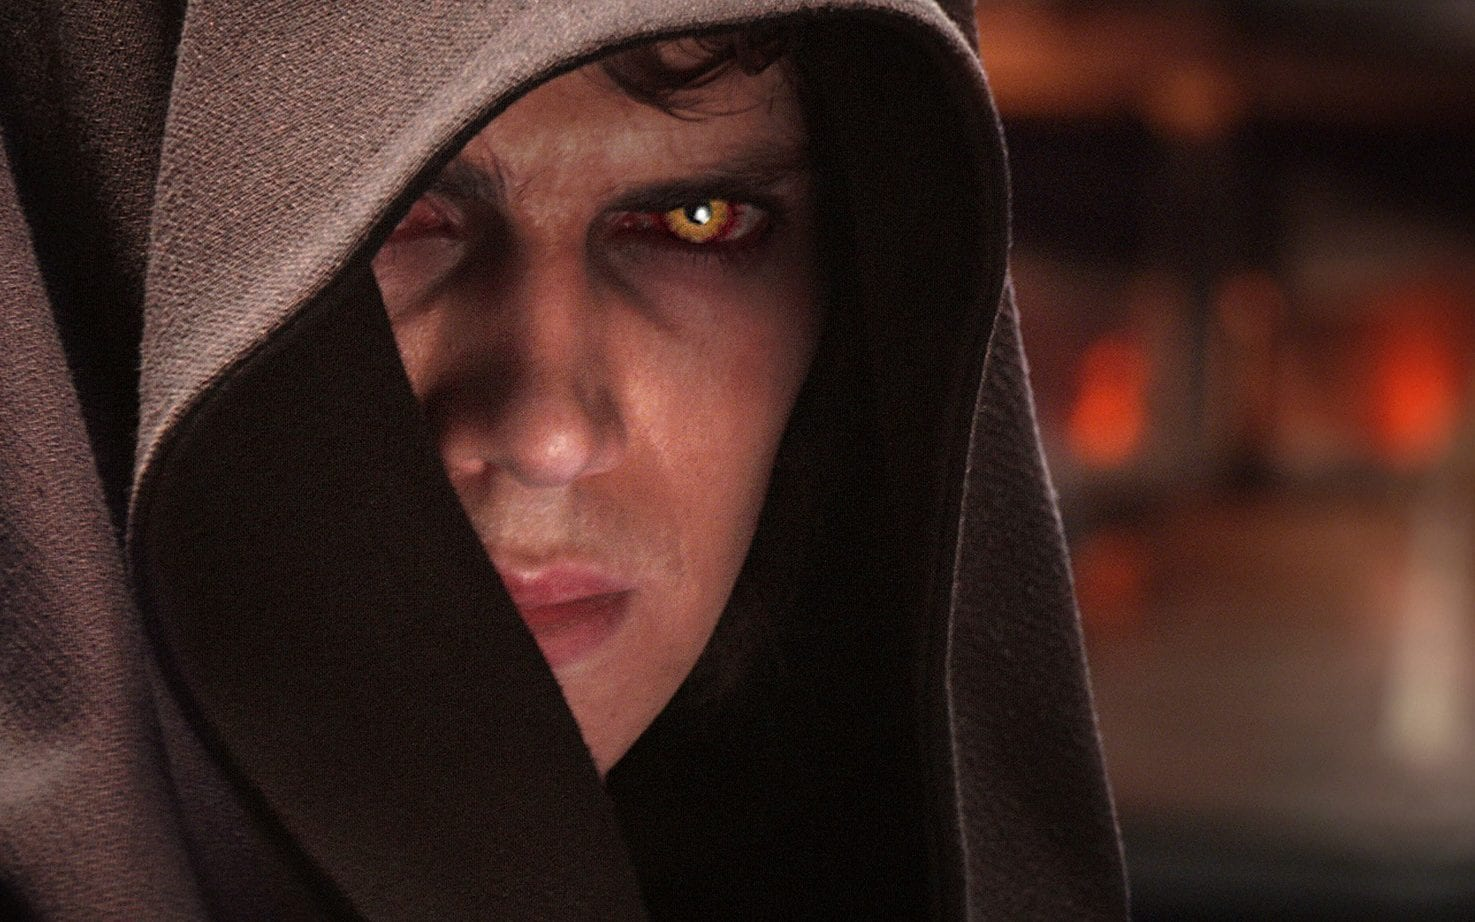 Leftlion 15 Years Later Star Wars Episode Iii Revenge Of The Sith